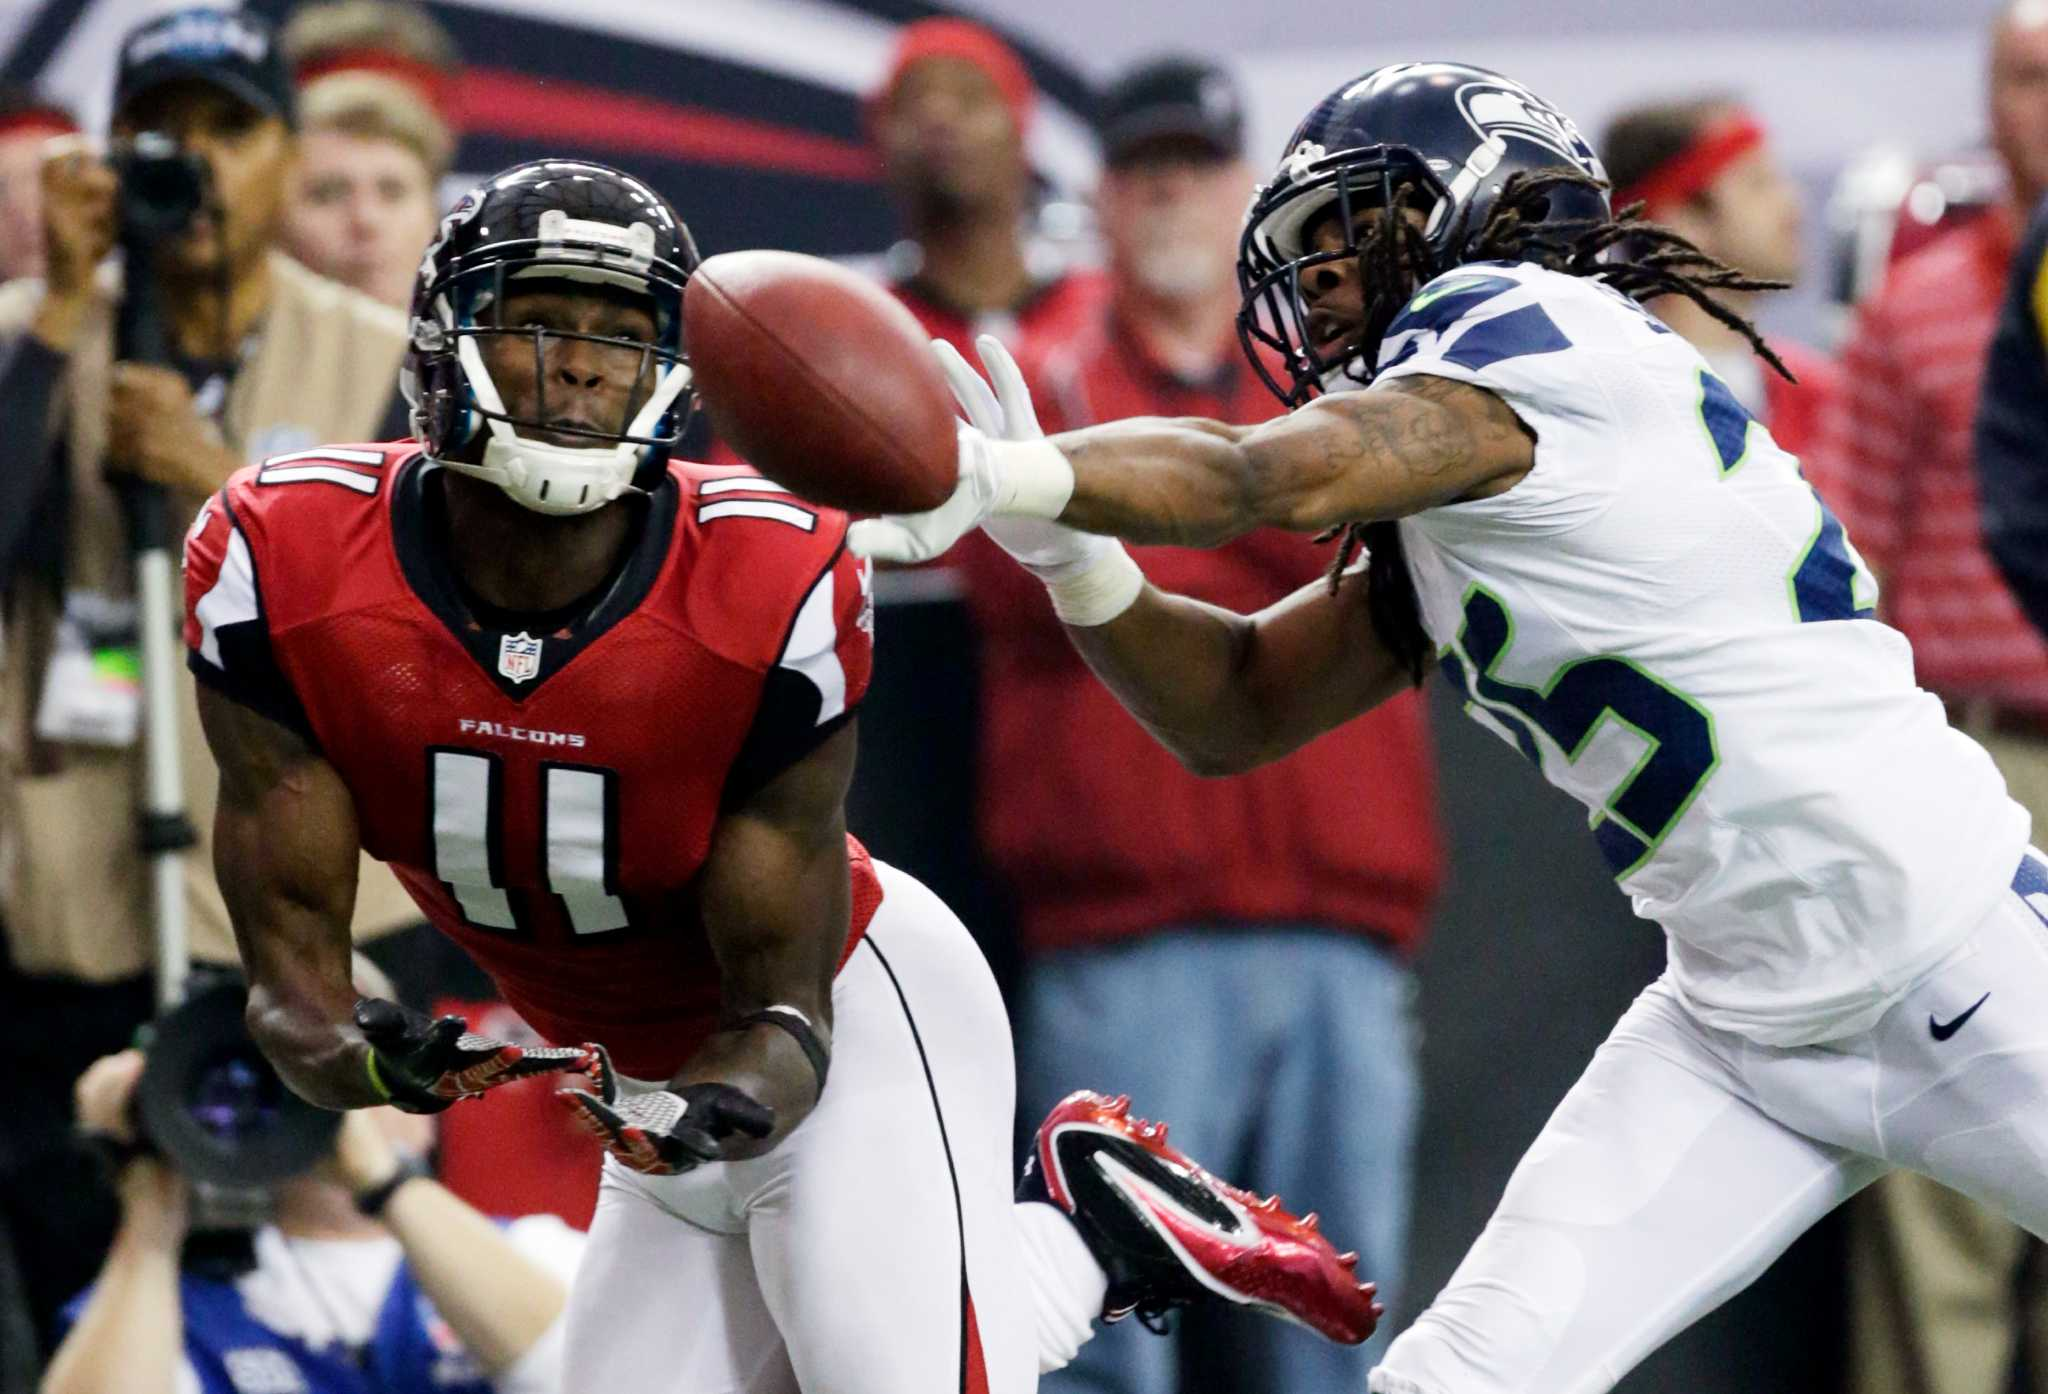 Seahawks Richard Sherman to face huge test in Falcons Julio